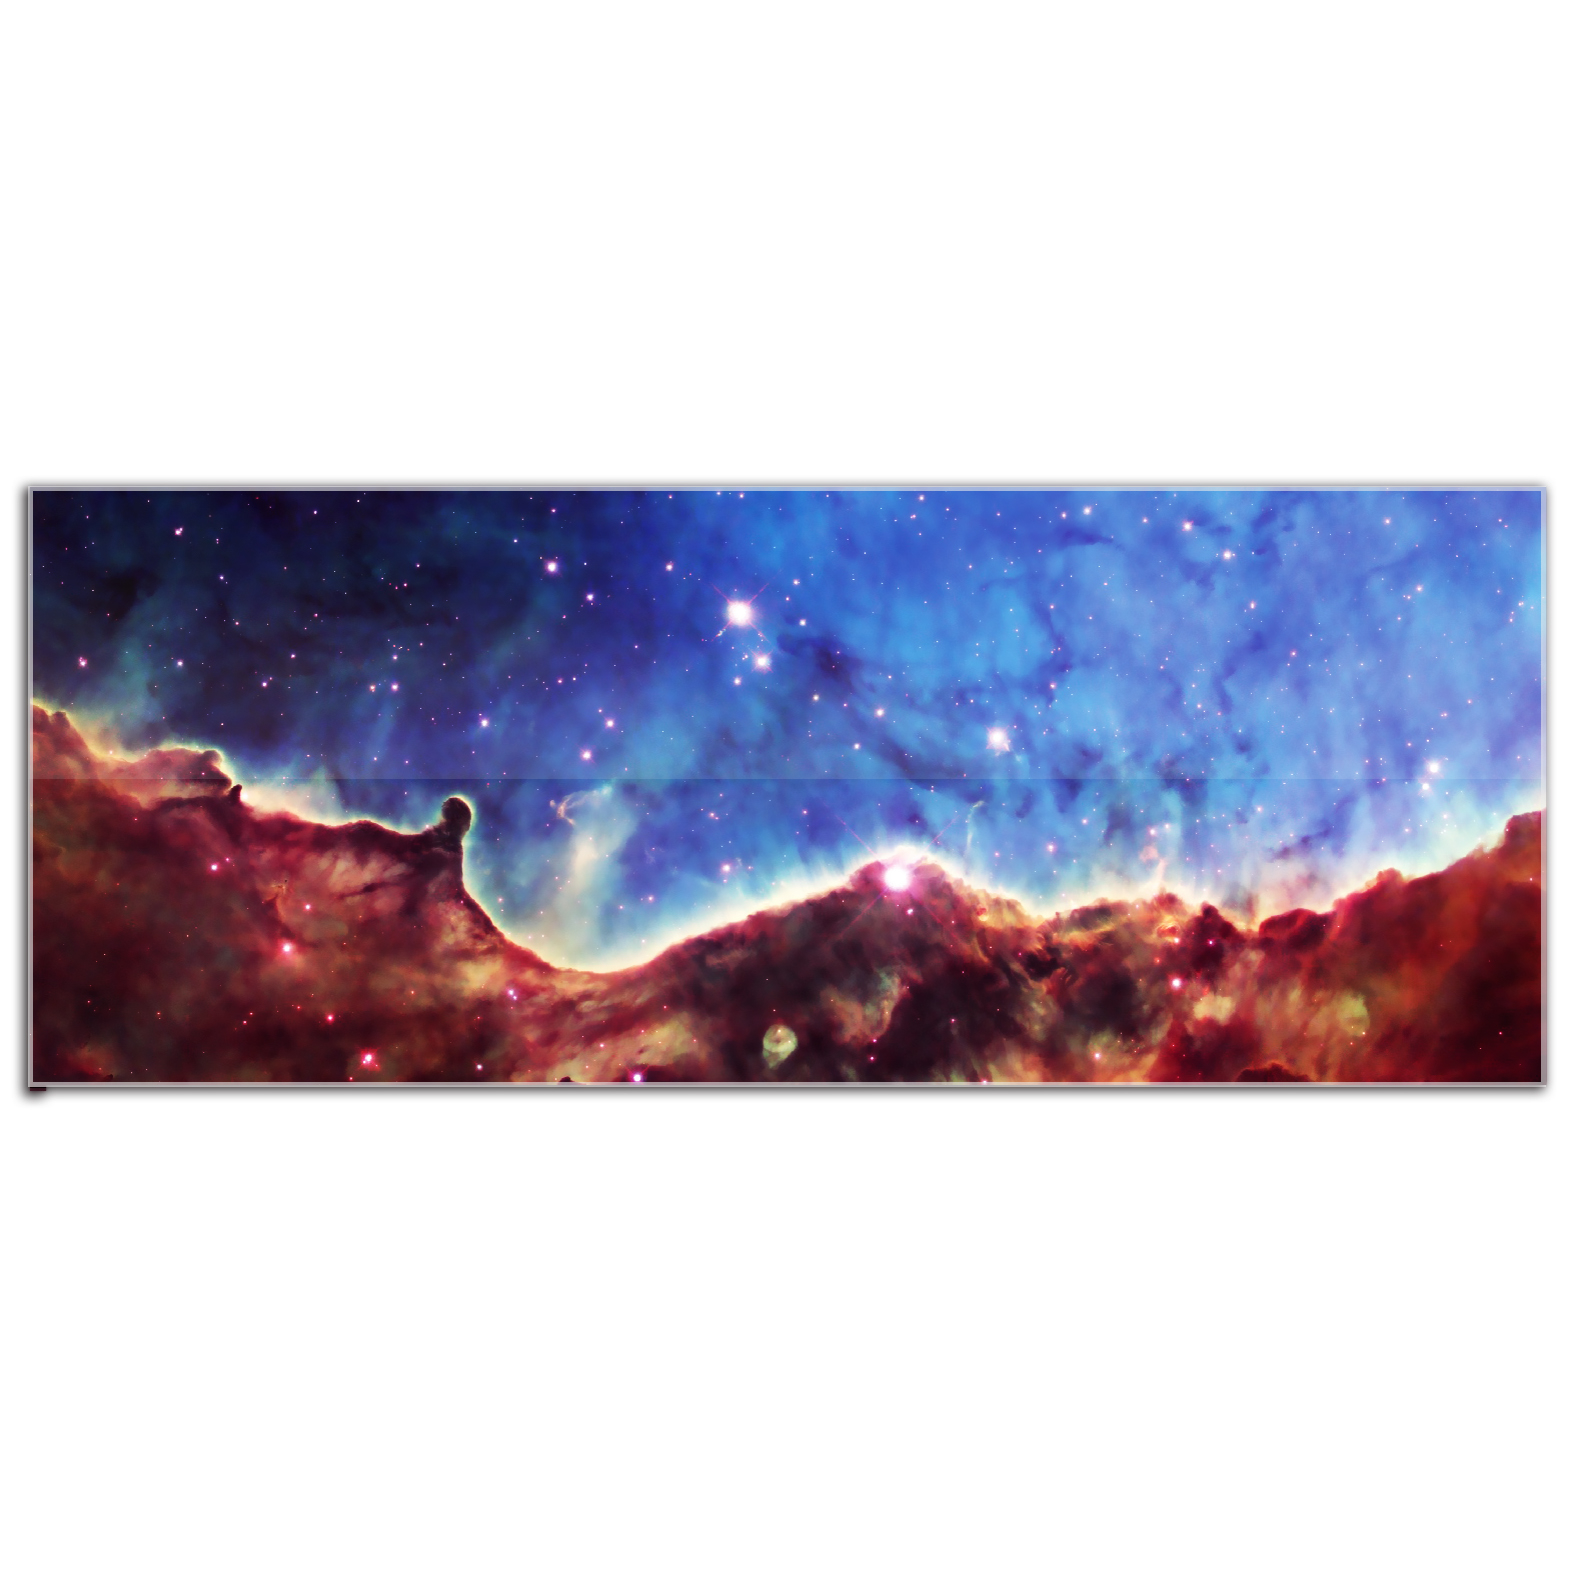 Acrylic Nebula Artwork 'Celestial Landscape' Abstract Outer Space Wall Art - HD Reverse-Print Hubble Photo Decor, Glossy Plexiglas Artwork